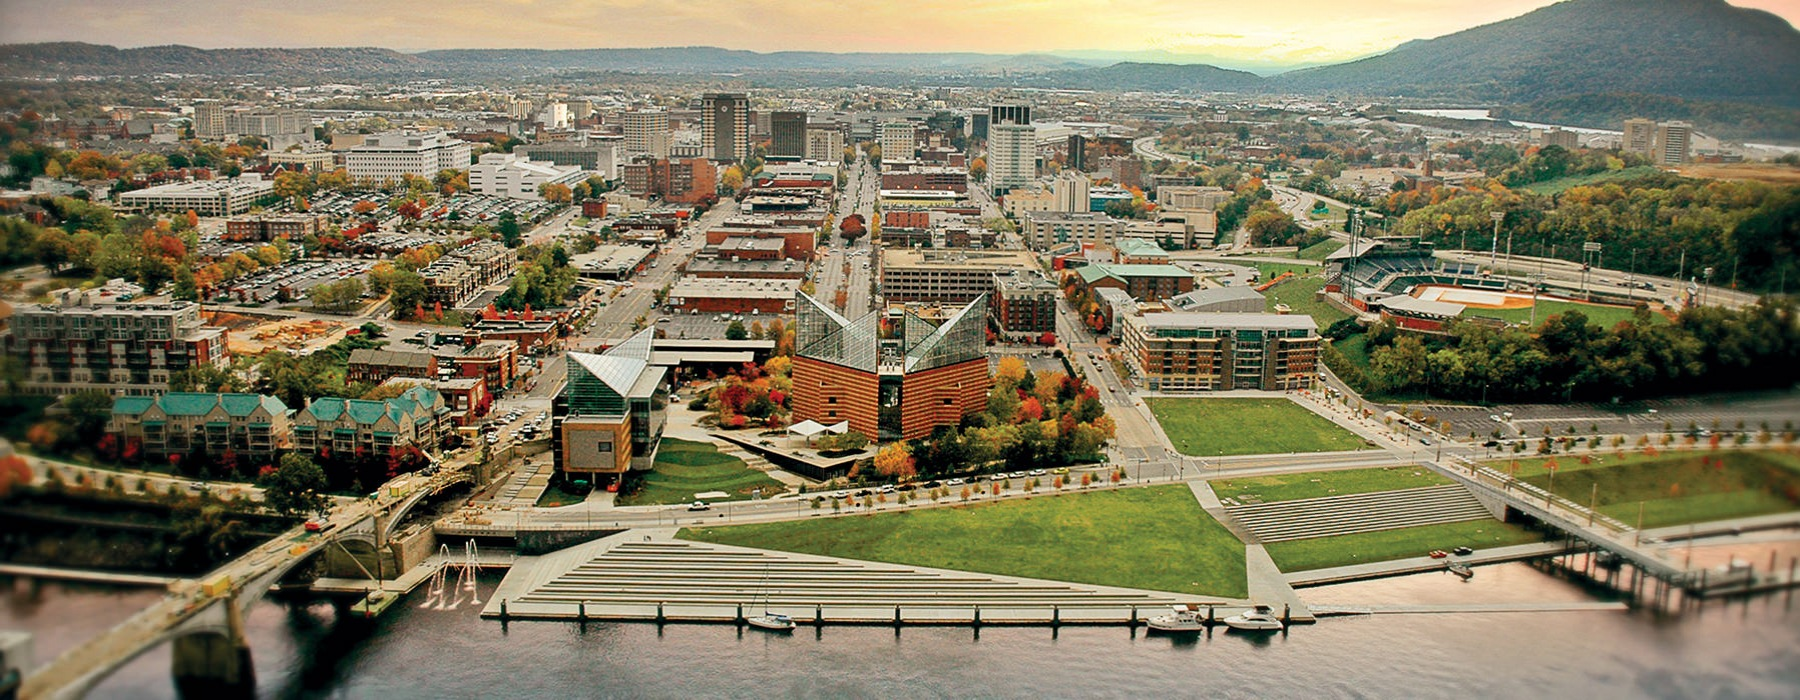 aerial view of Chattanooga